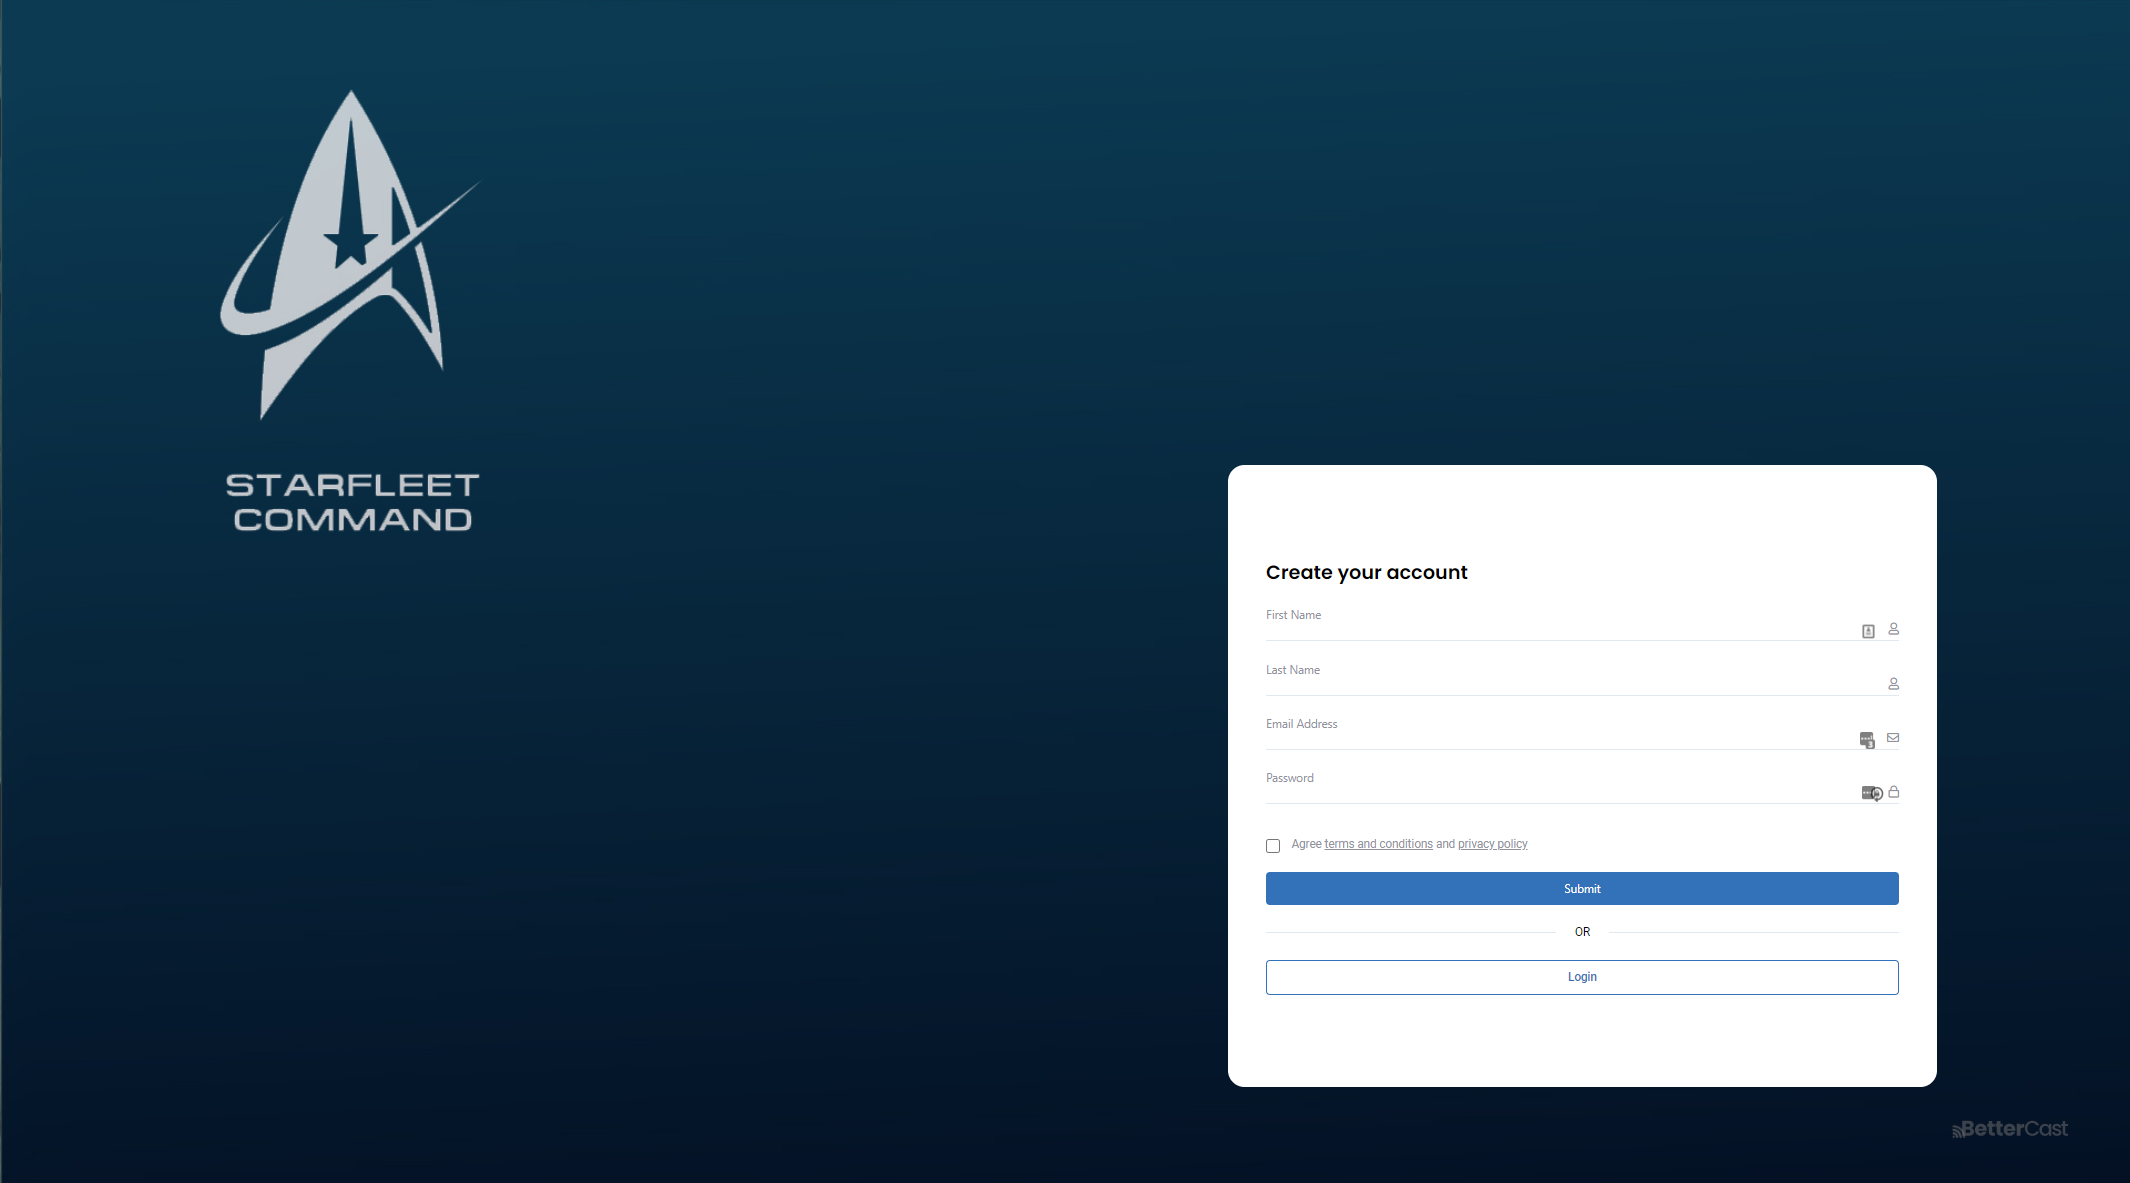 Bettercast screenshot: Bettercast supports multiple access methods for your guests. Either let Bettercast manage your ticket sales, you manage and provide Coupon access or we can provide free access.